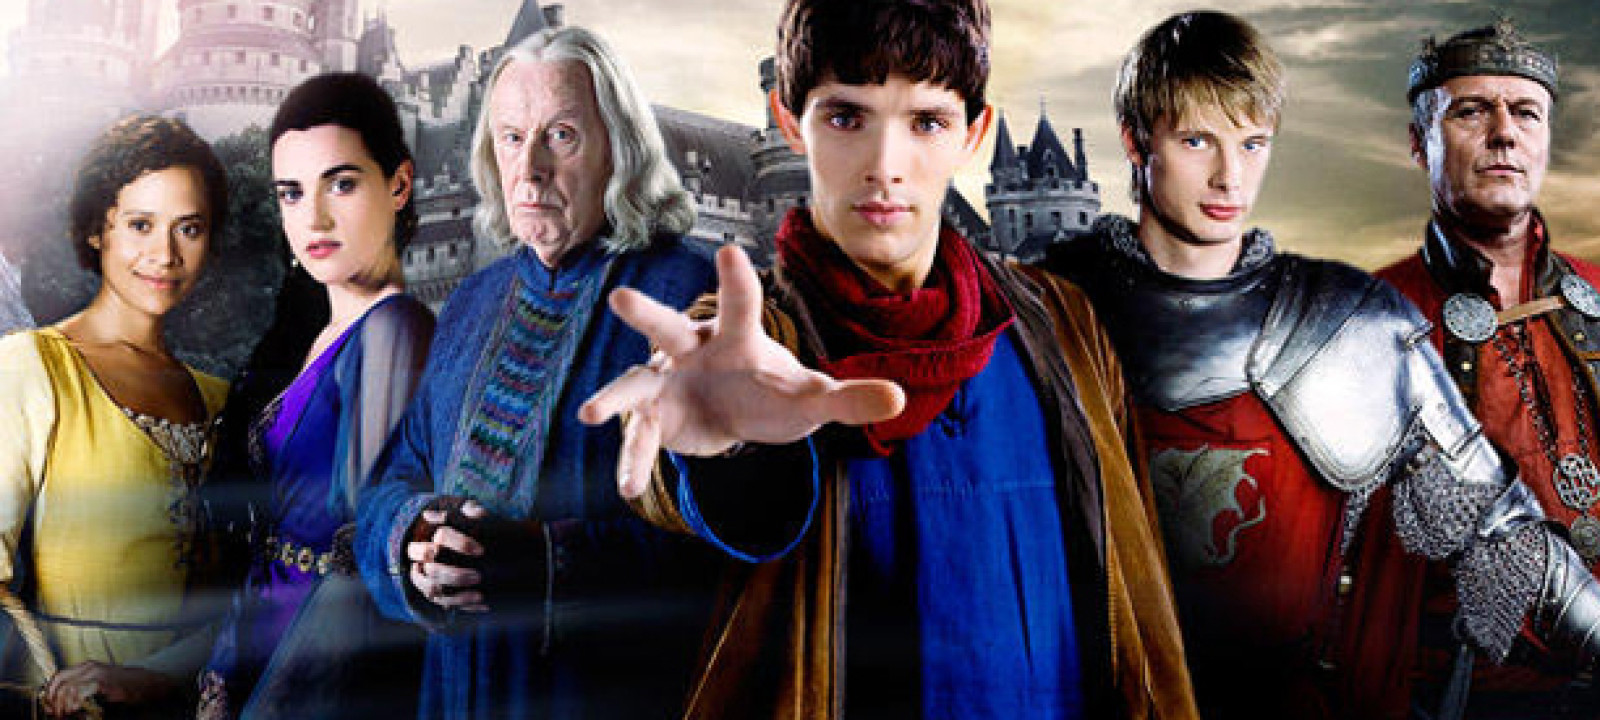 merlin season 1 episode 2 full movie english